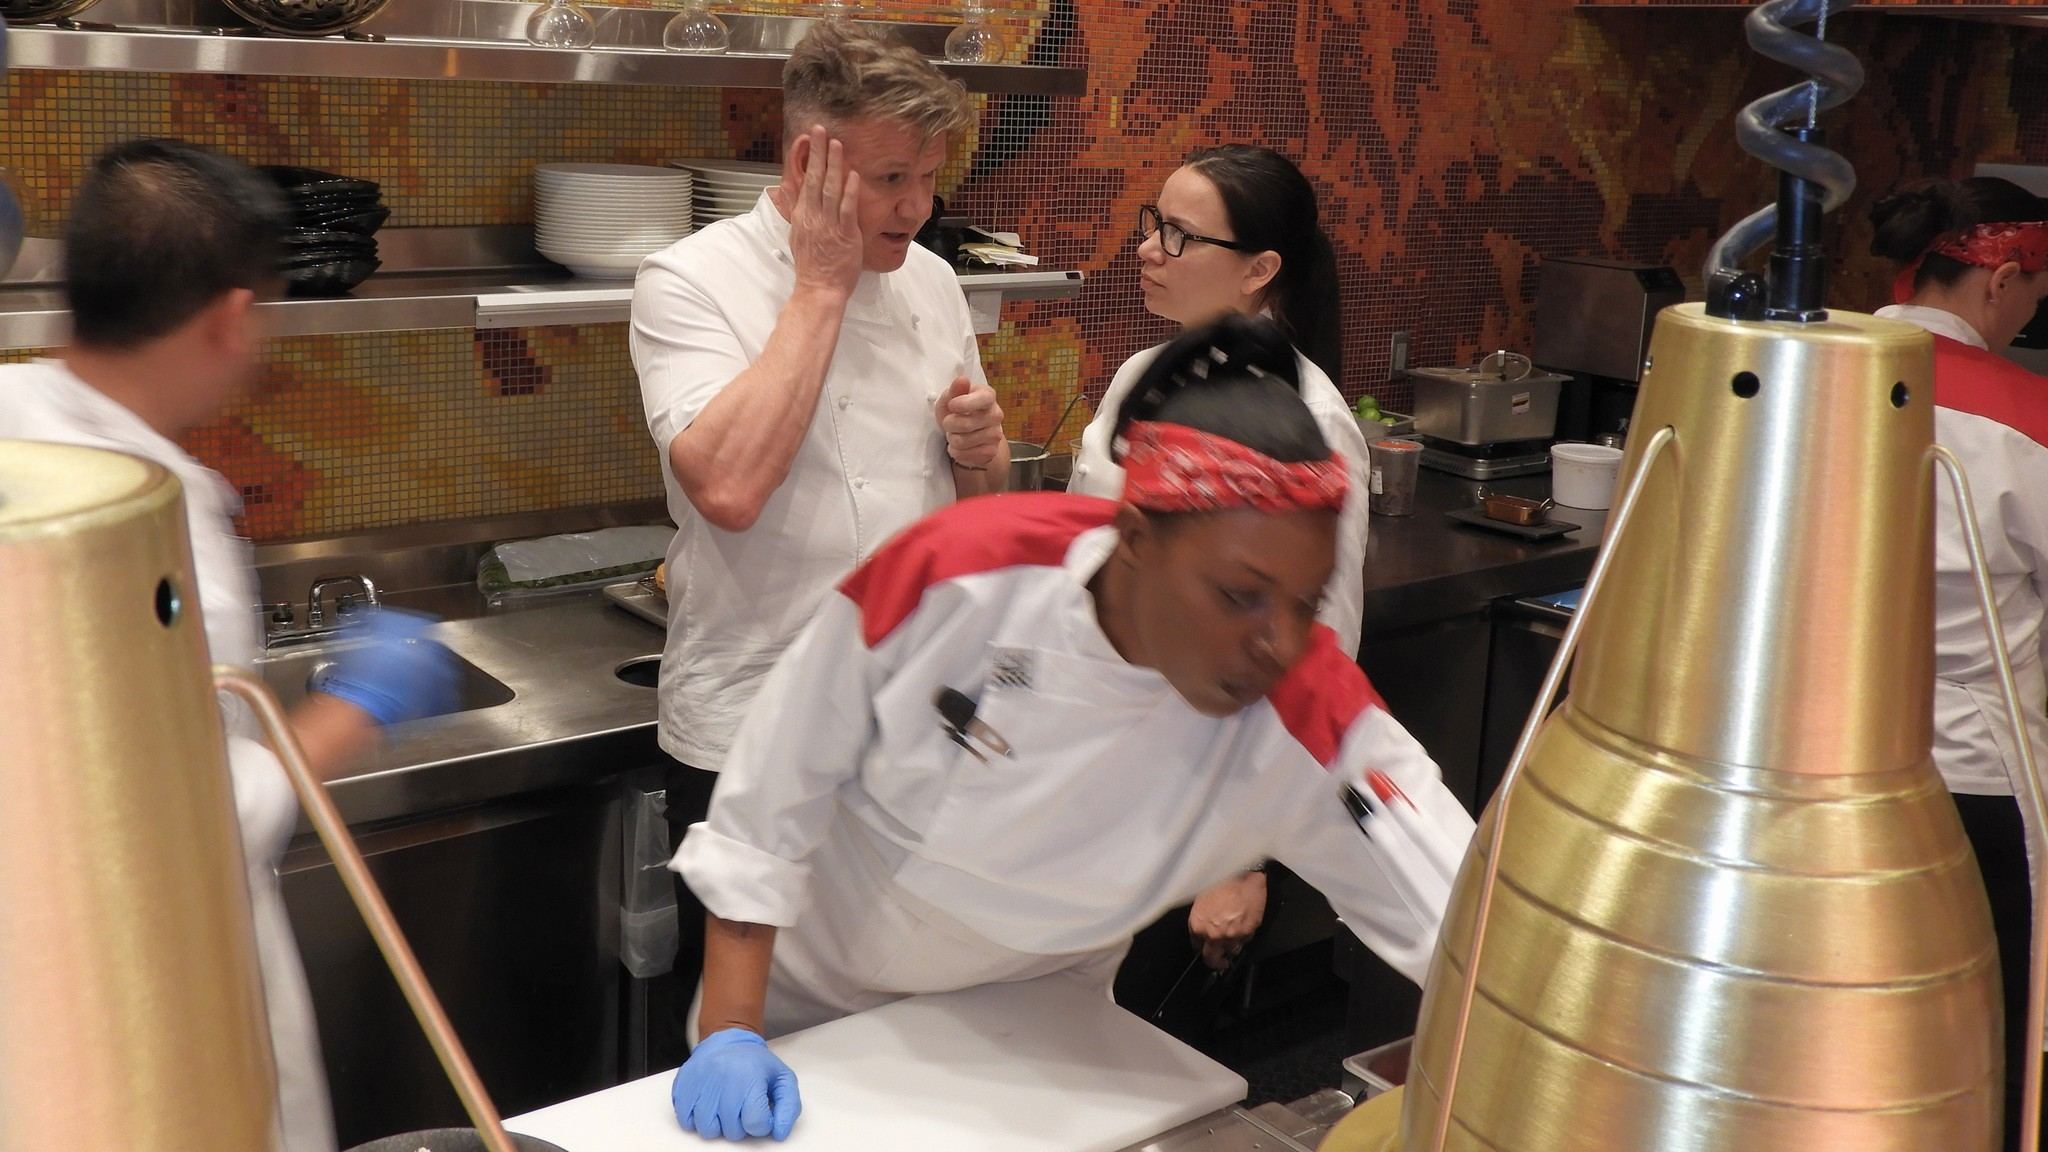 as cooks hurry about their assigned tasks chefs gordon ramsay and christina wilson confer at hells kitchen in las vegas wilson a top executive in - Hells Kitchen Las Vegas 2